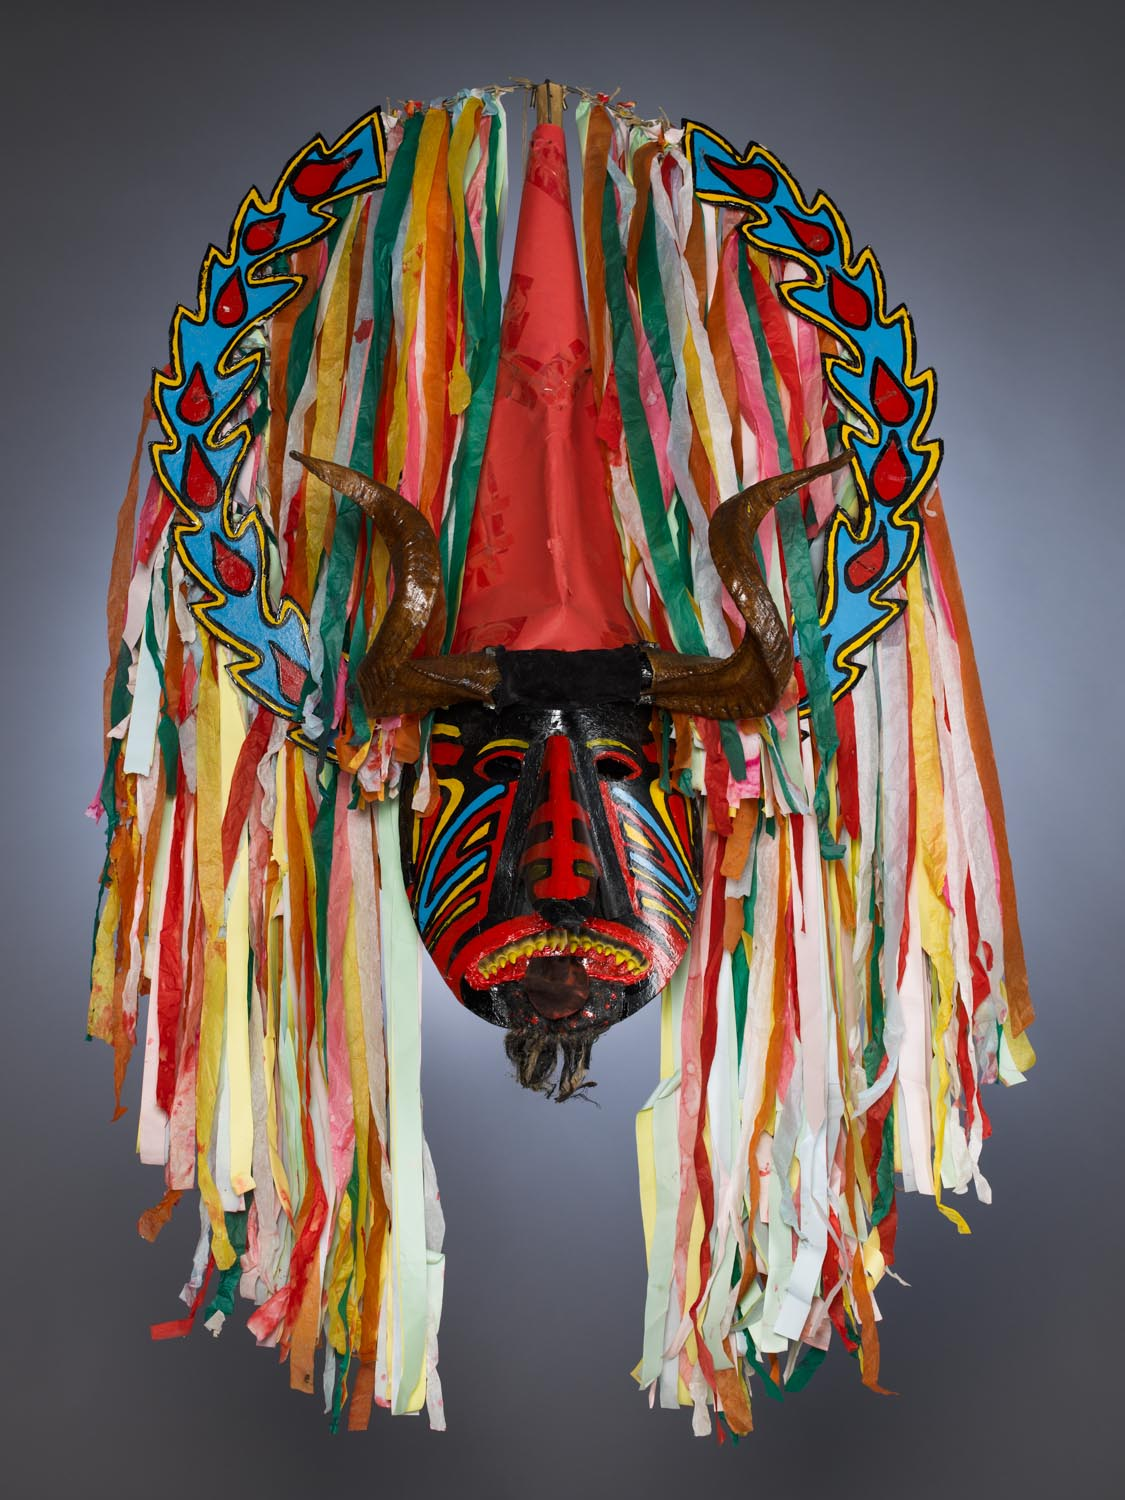 Portuguese Masquerade Costume Mask. Photographed for Dr. Anthony Shelton's book: Heaven & Hell, 2014. MOA CAT: 2956/199 a c.2010. By Caretos da Lagoa, Portugal: Coimbra, Mira